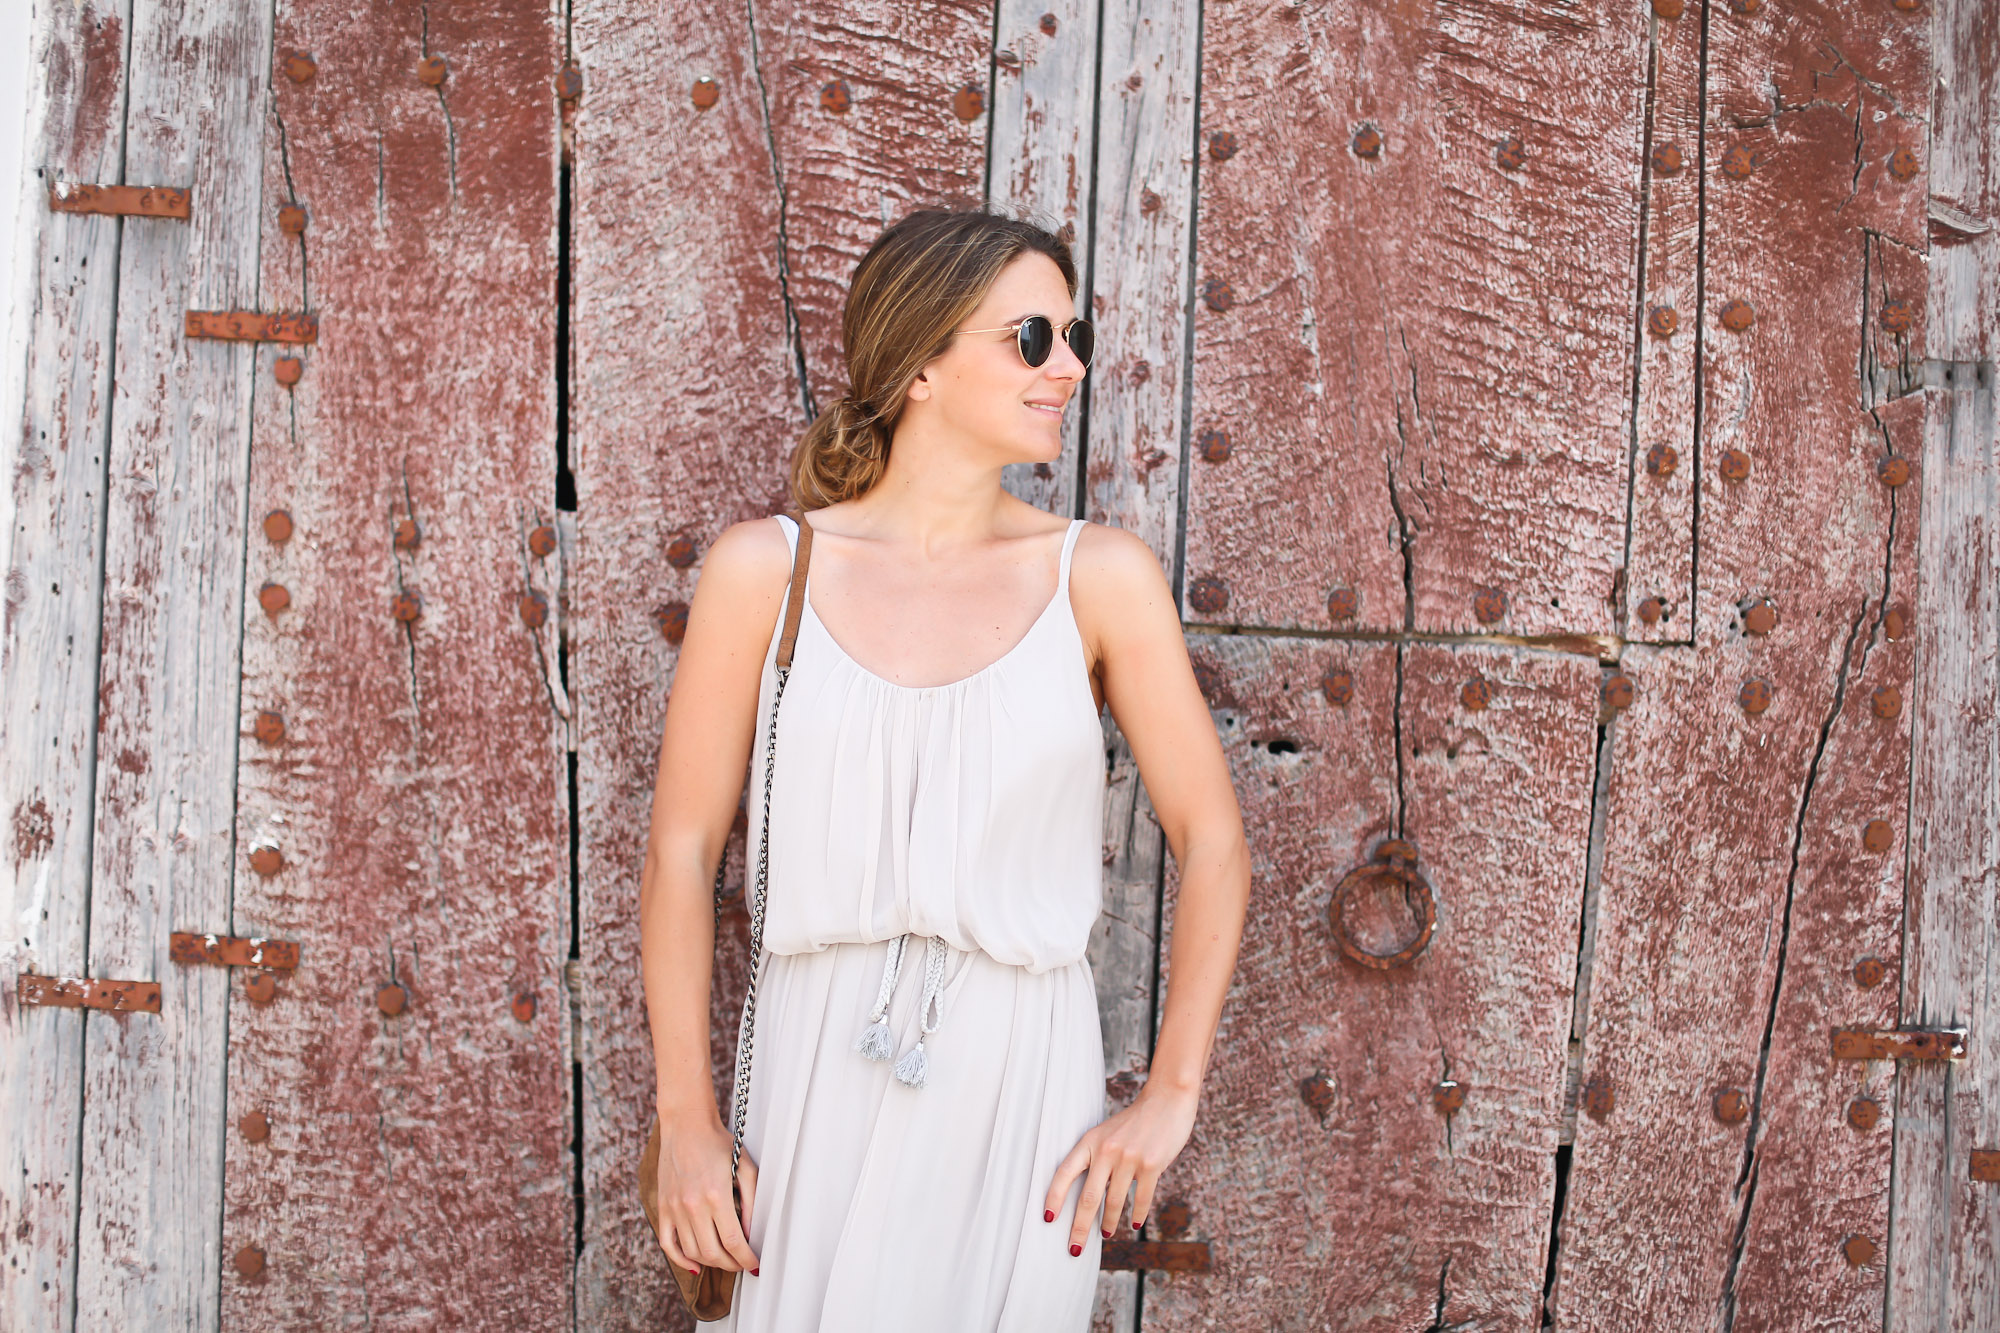 Clochet_streetstyle_theoutnet_irisandink_greek_long_maxidress_romansandals-6